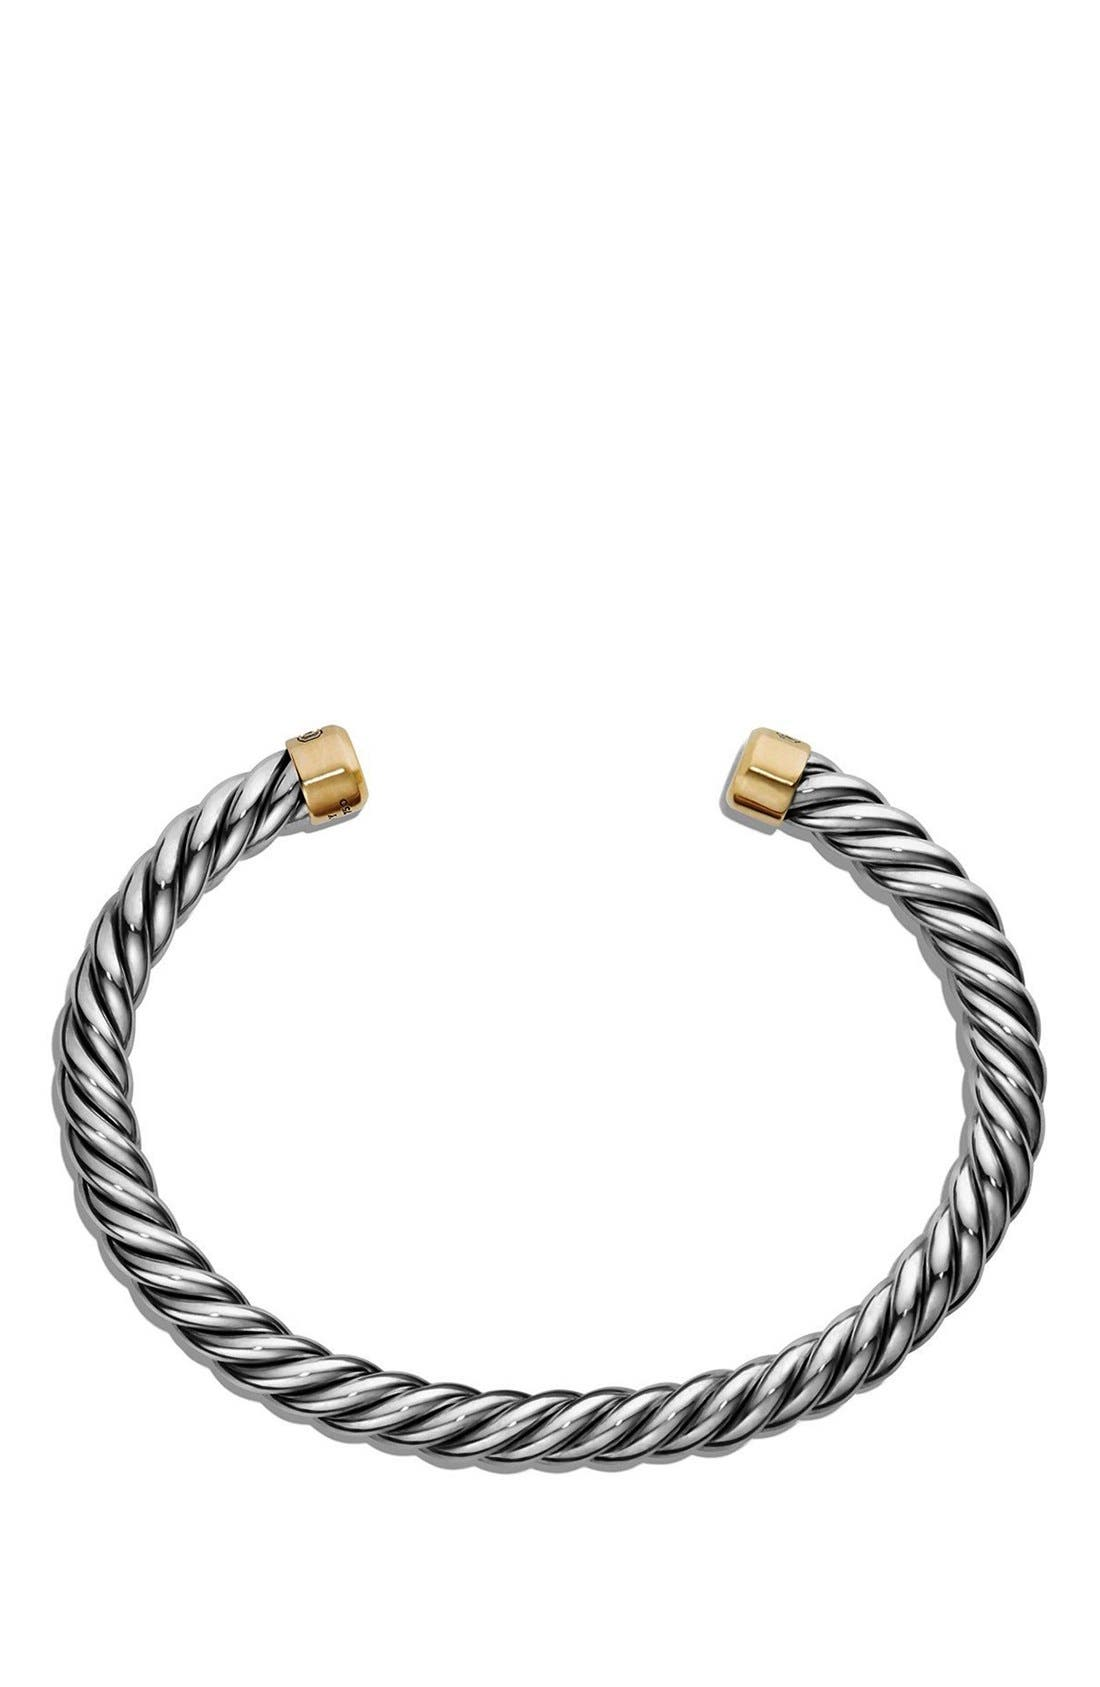 'Cable Classics' Cuff Bracelet with 18K Gold,                             Alternate thumbnail 3, color,                             SILVER/ GOLD